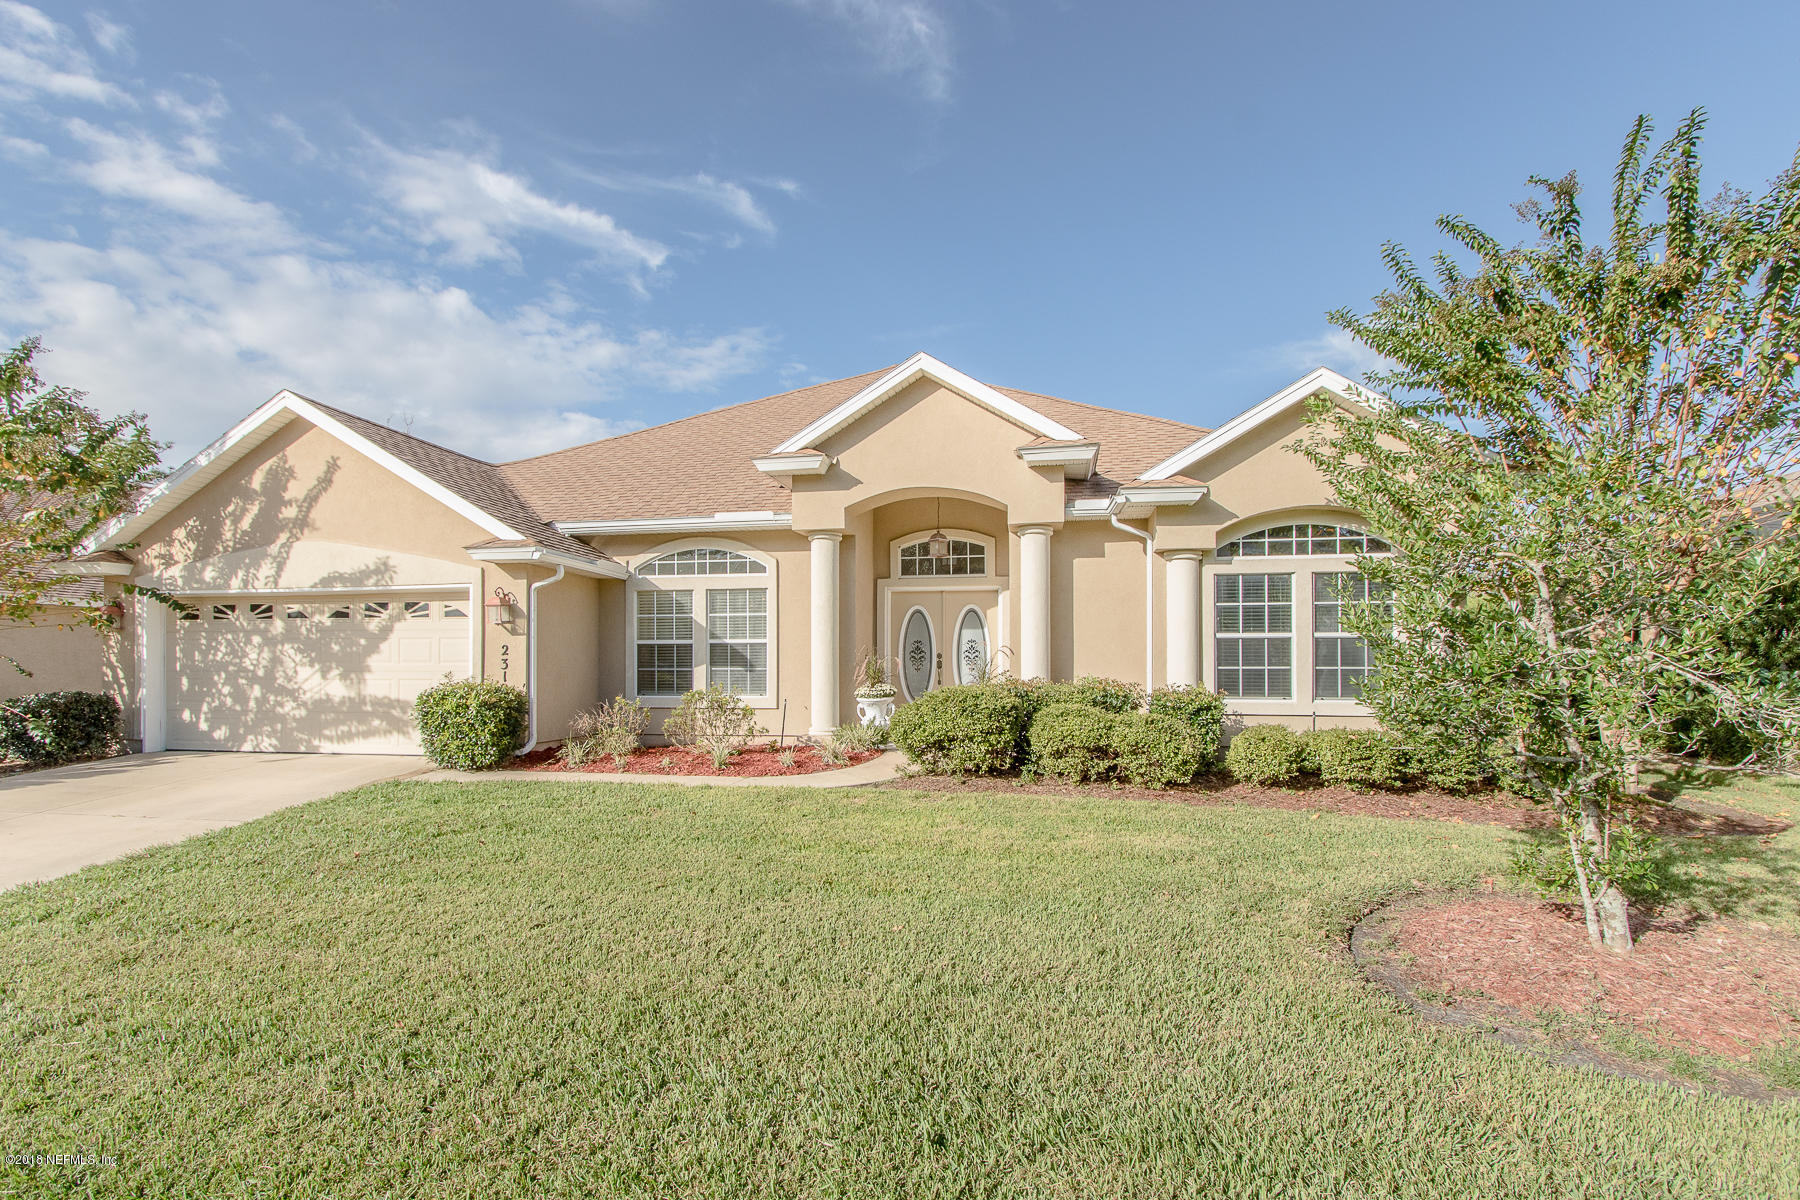 2312 LINKS, FLEMING ISLAND, FLORIDA 32003, 5 Bedrooms Bedrooms, ,4 BathroomsBathrooms,Residential - single family,For sale,LINKS,963313